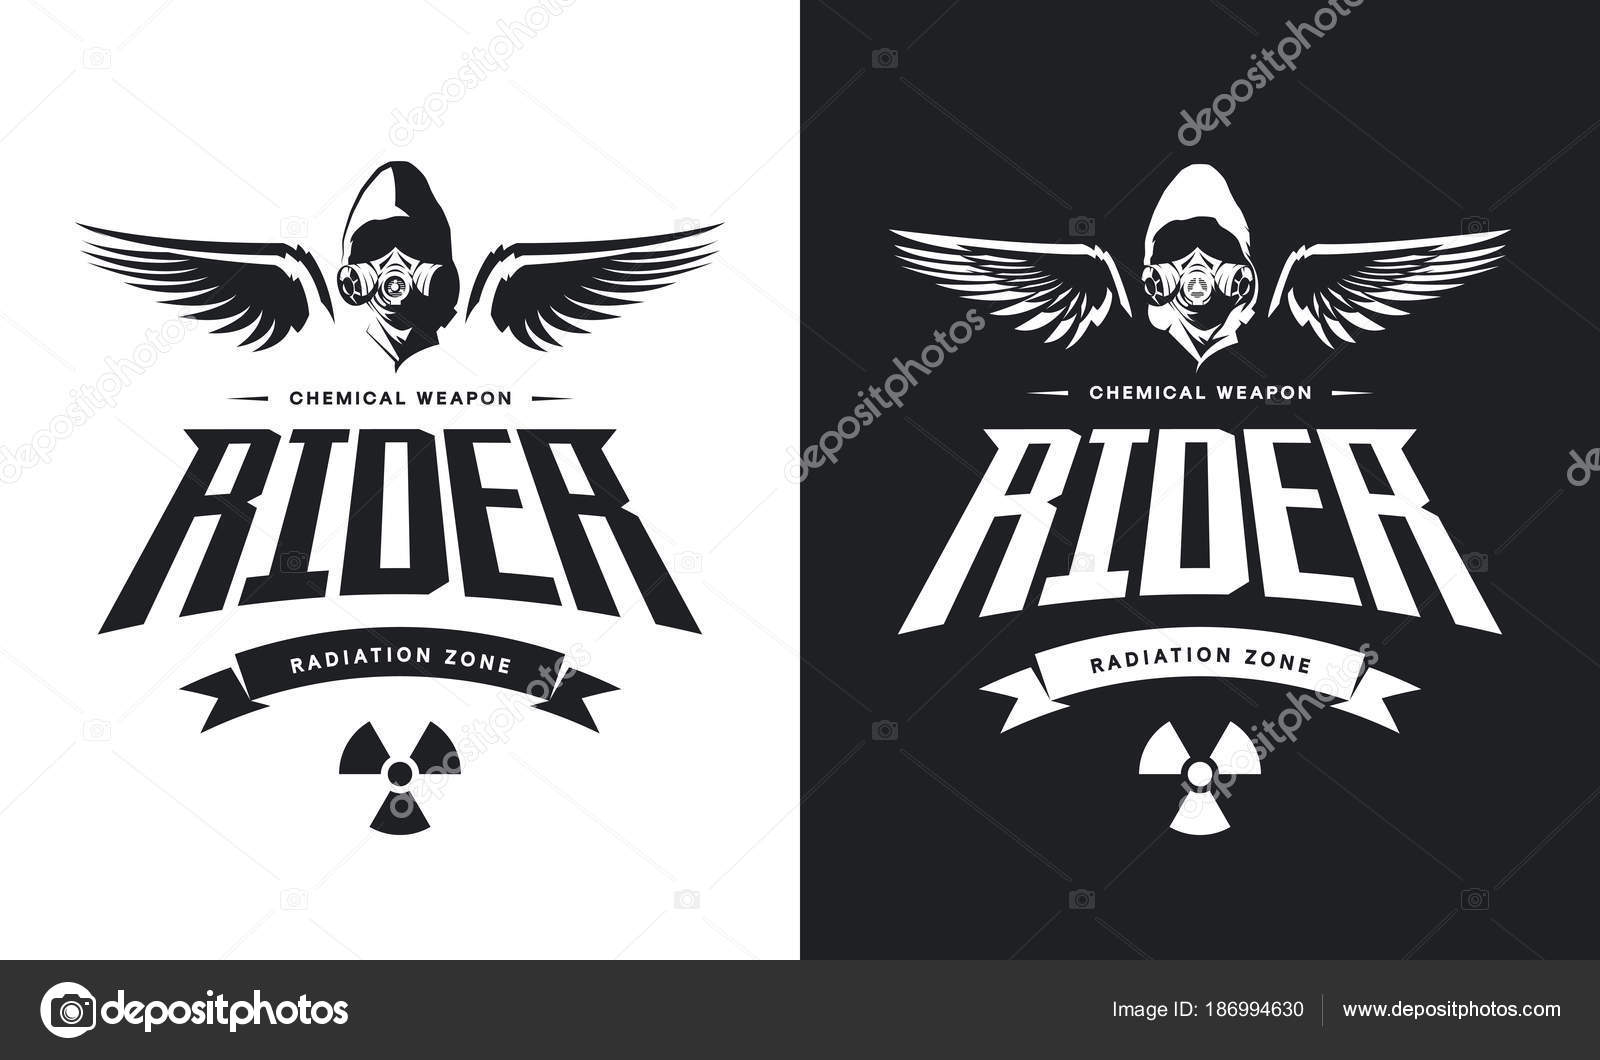 Vintage toxic rider gas mask black white isolated vector logo vintage toxic rider gas mask black white isolated vector logo stock vector biocorpaavc Images